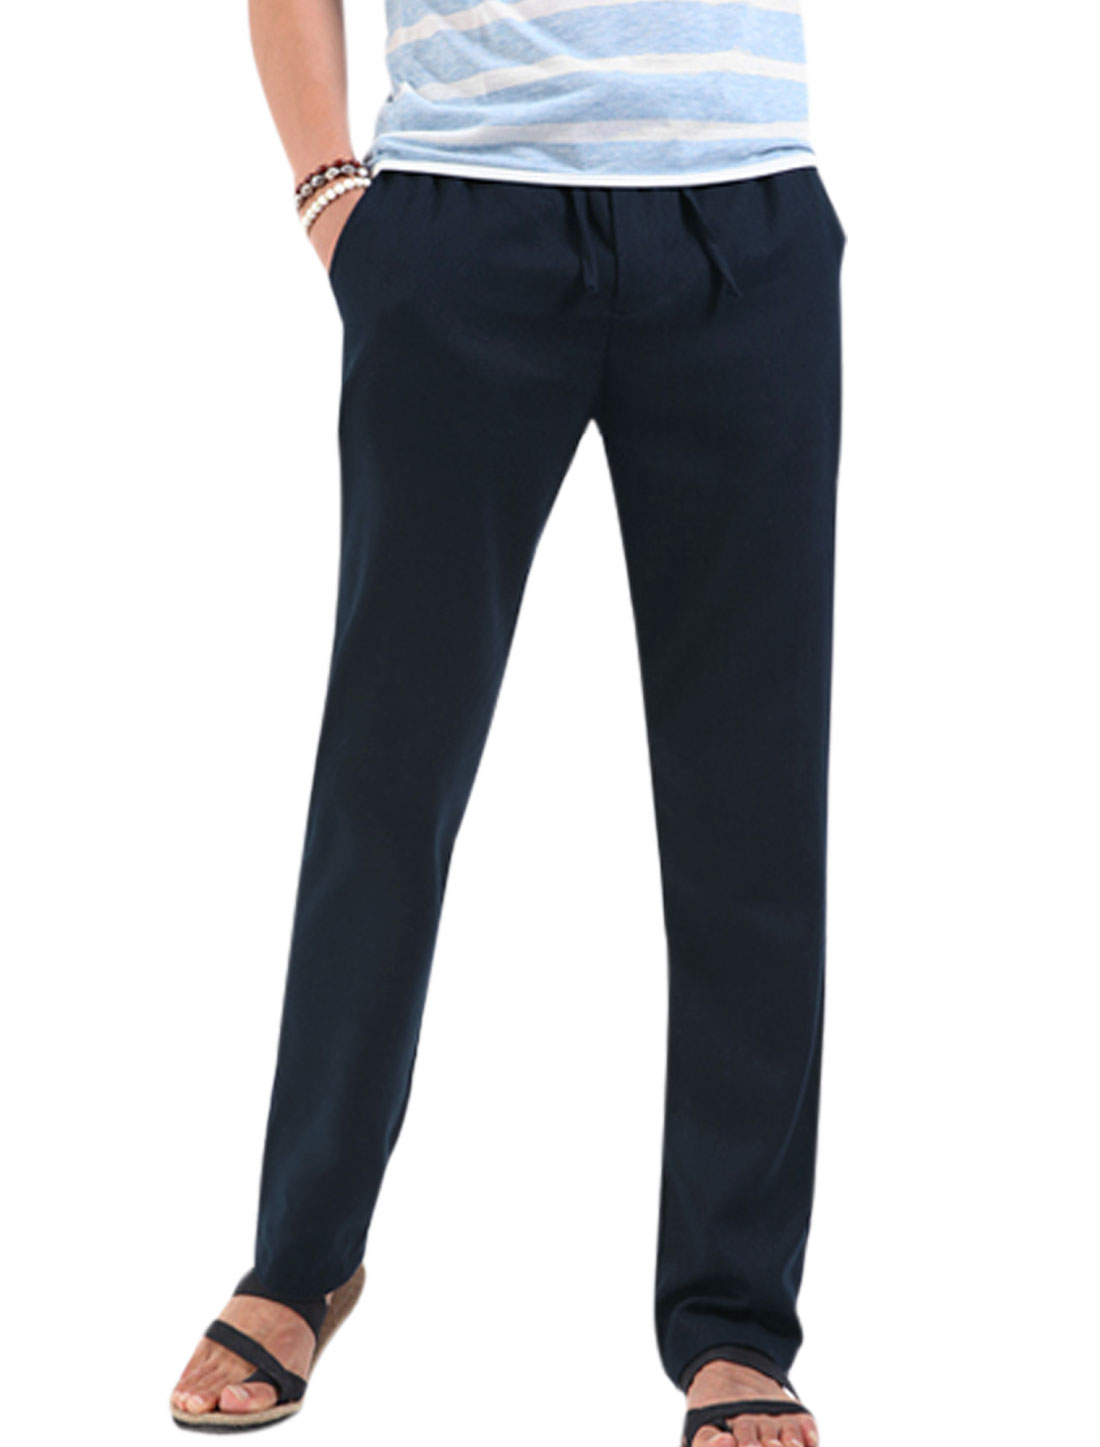 Men Stretchy Drawstring Waist Zip Up Leisure Pants Navy Blue W28